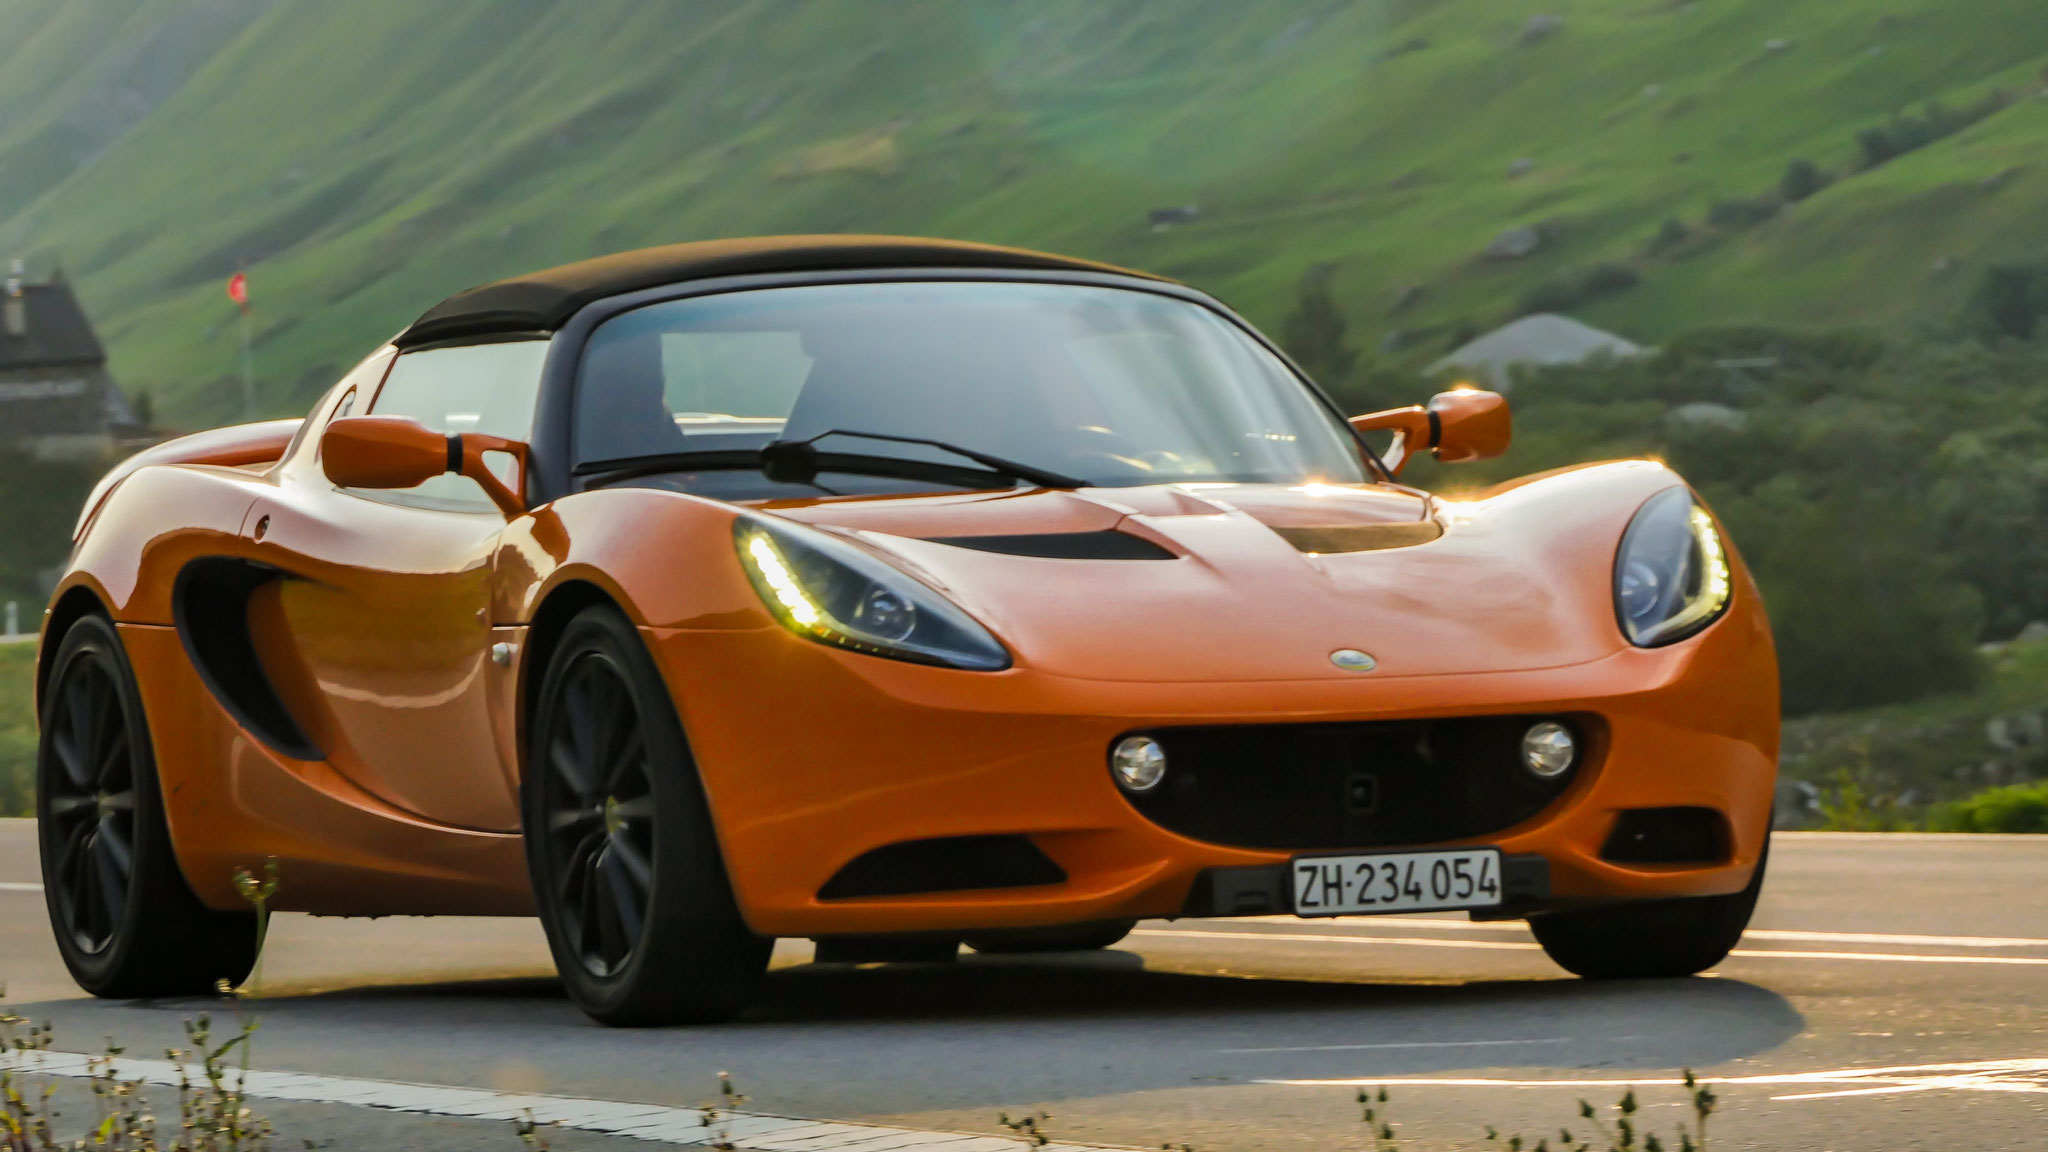 Lotus Elise S3 - ZH-234054 (CH)